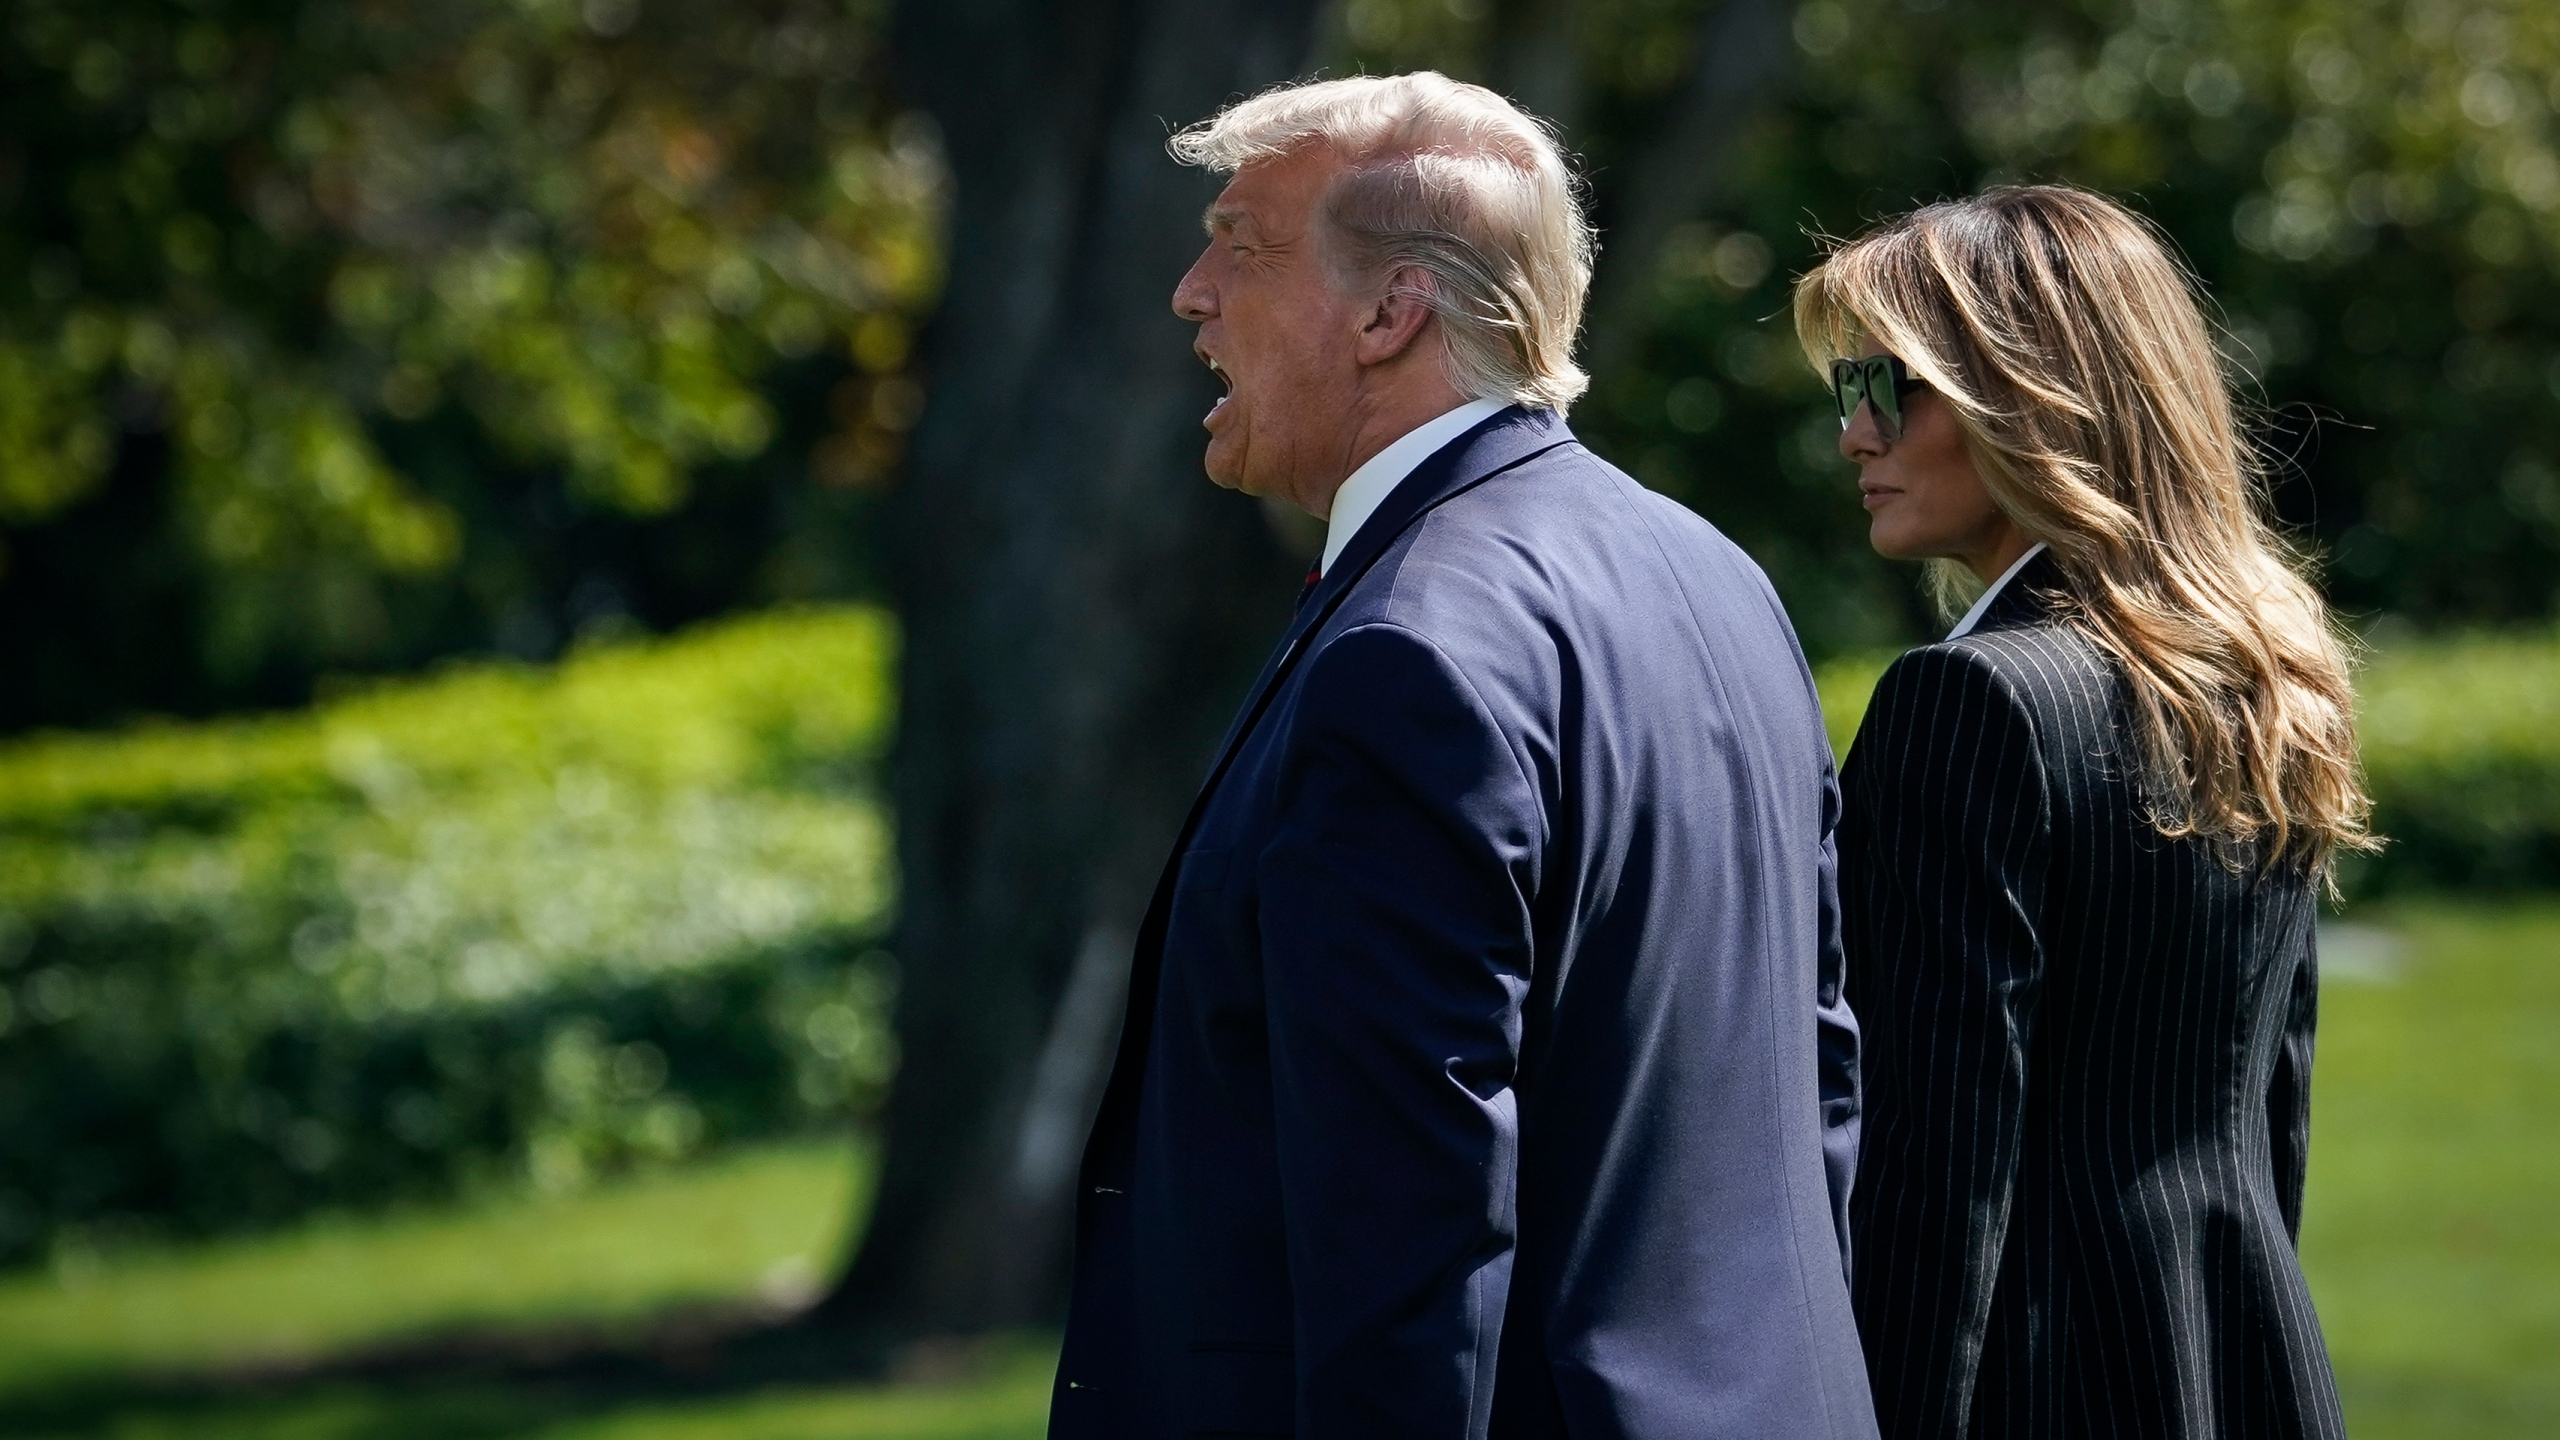 Donald and Melania Trump walk to Marine One on the South Lawn of the White House on Sept. 29, 2020 in Washington, D.C. (Drew Angerer/Getty Images)